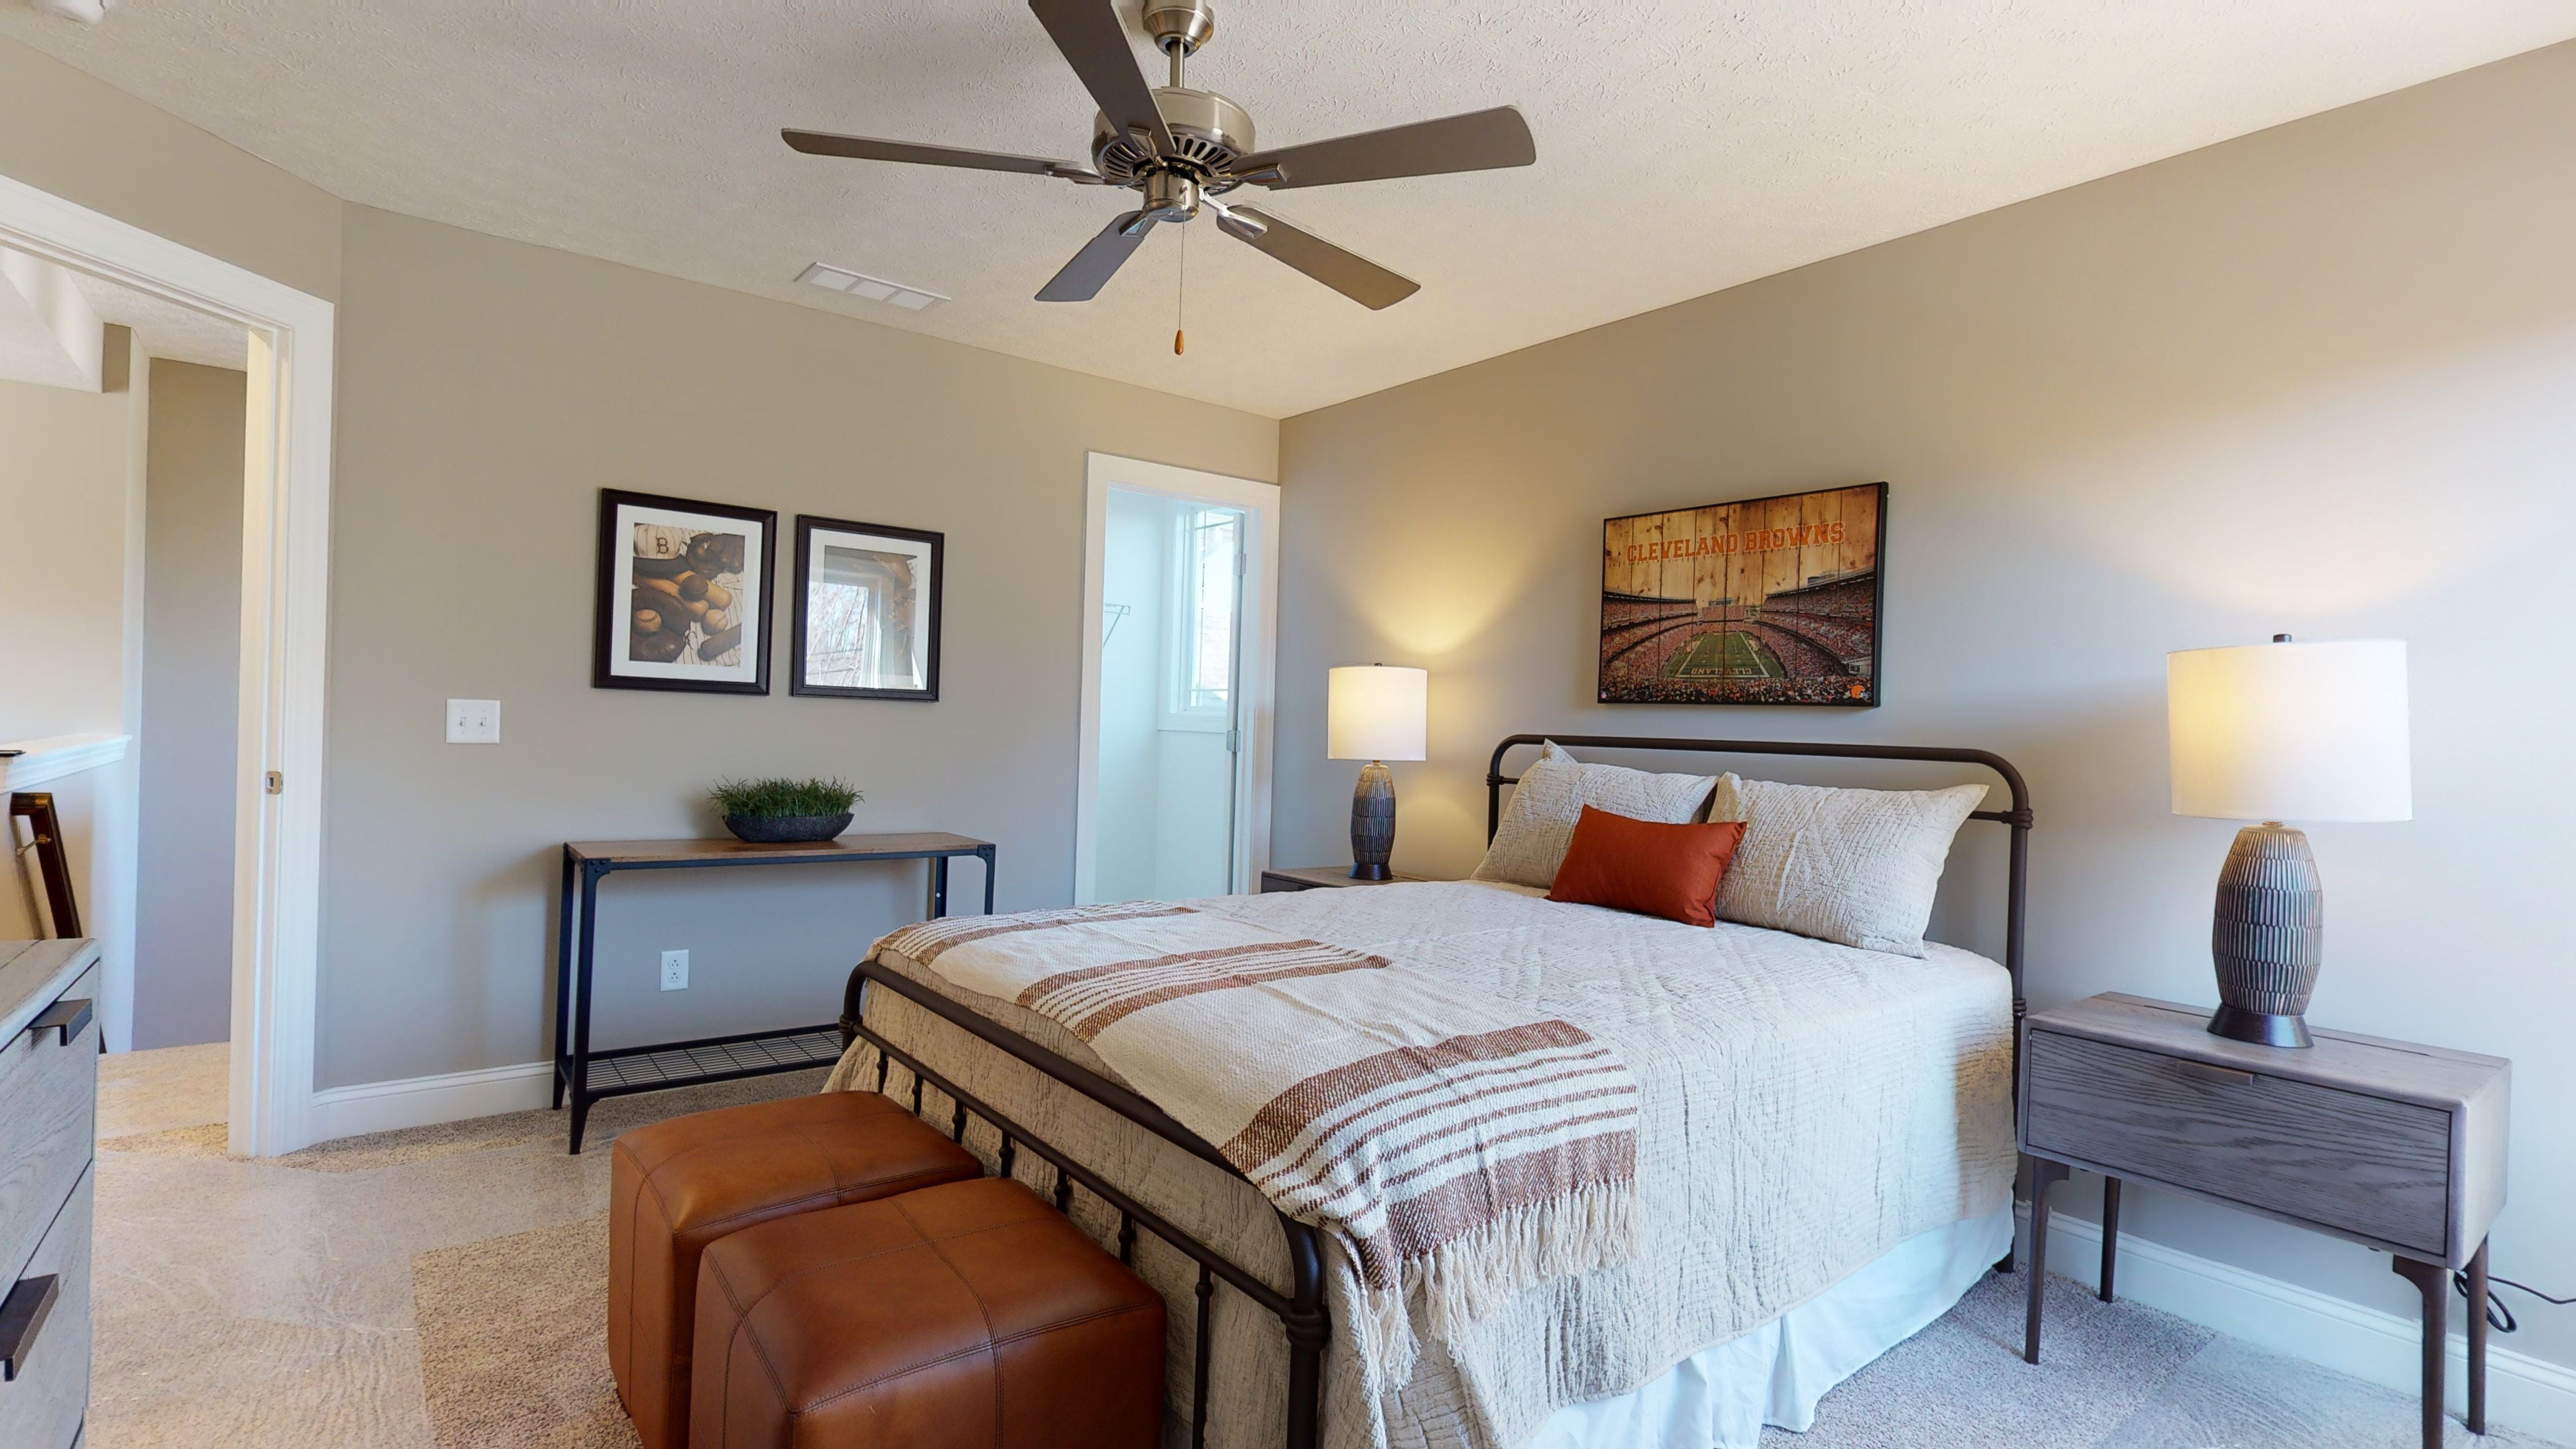 Bedroom featured in The Emilia By Parkview Custom Homes  in Cleveland, OH